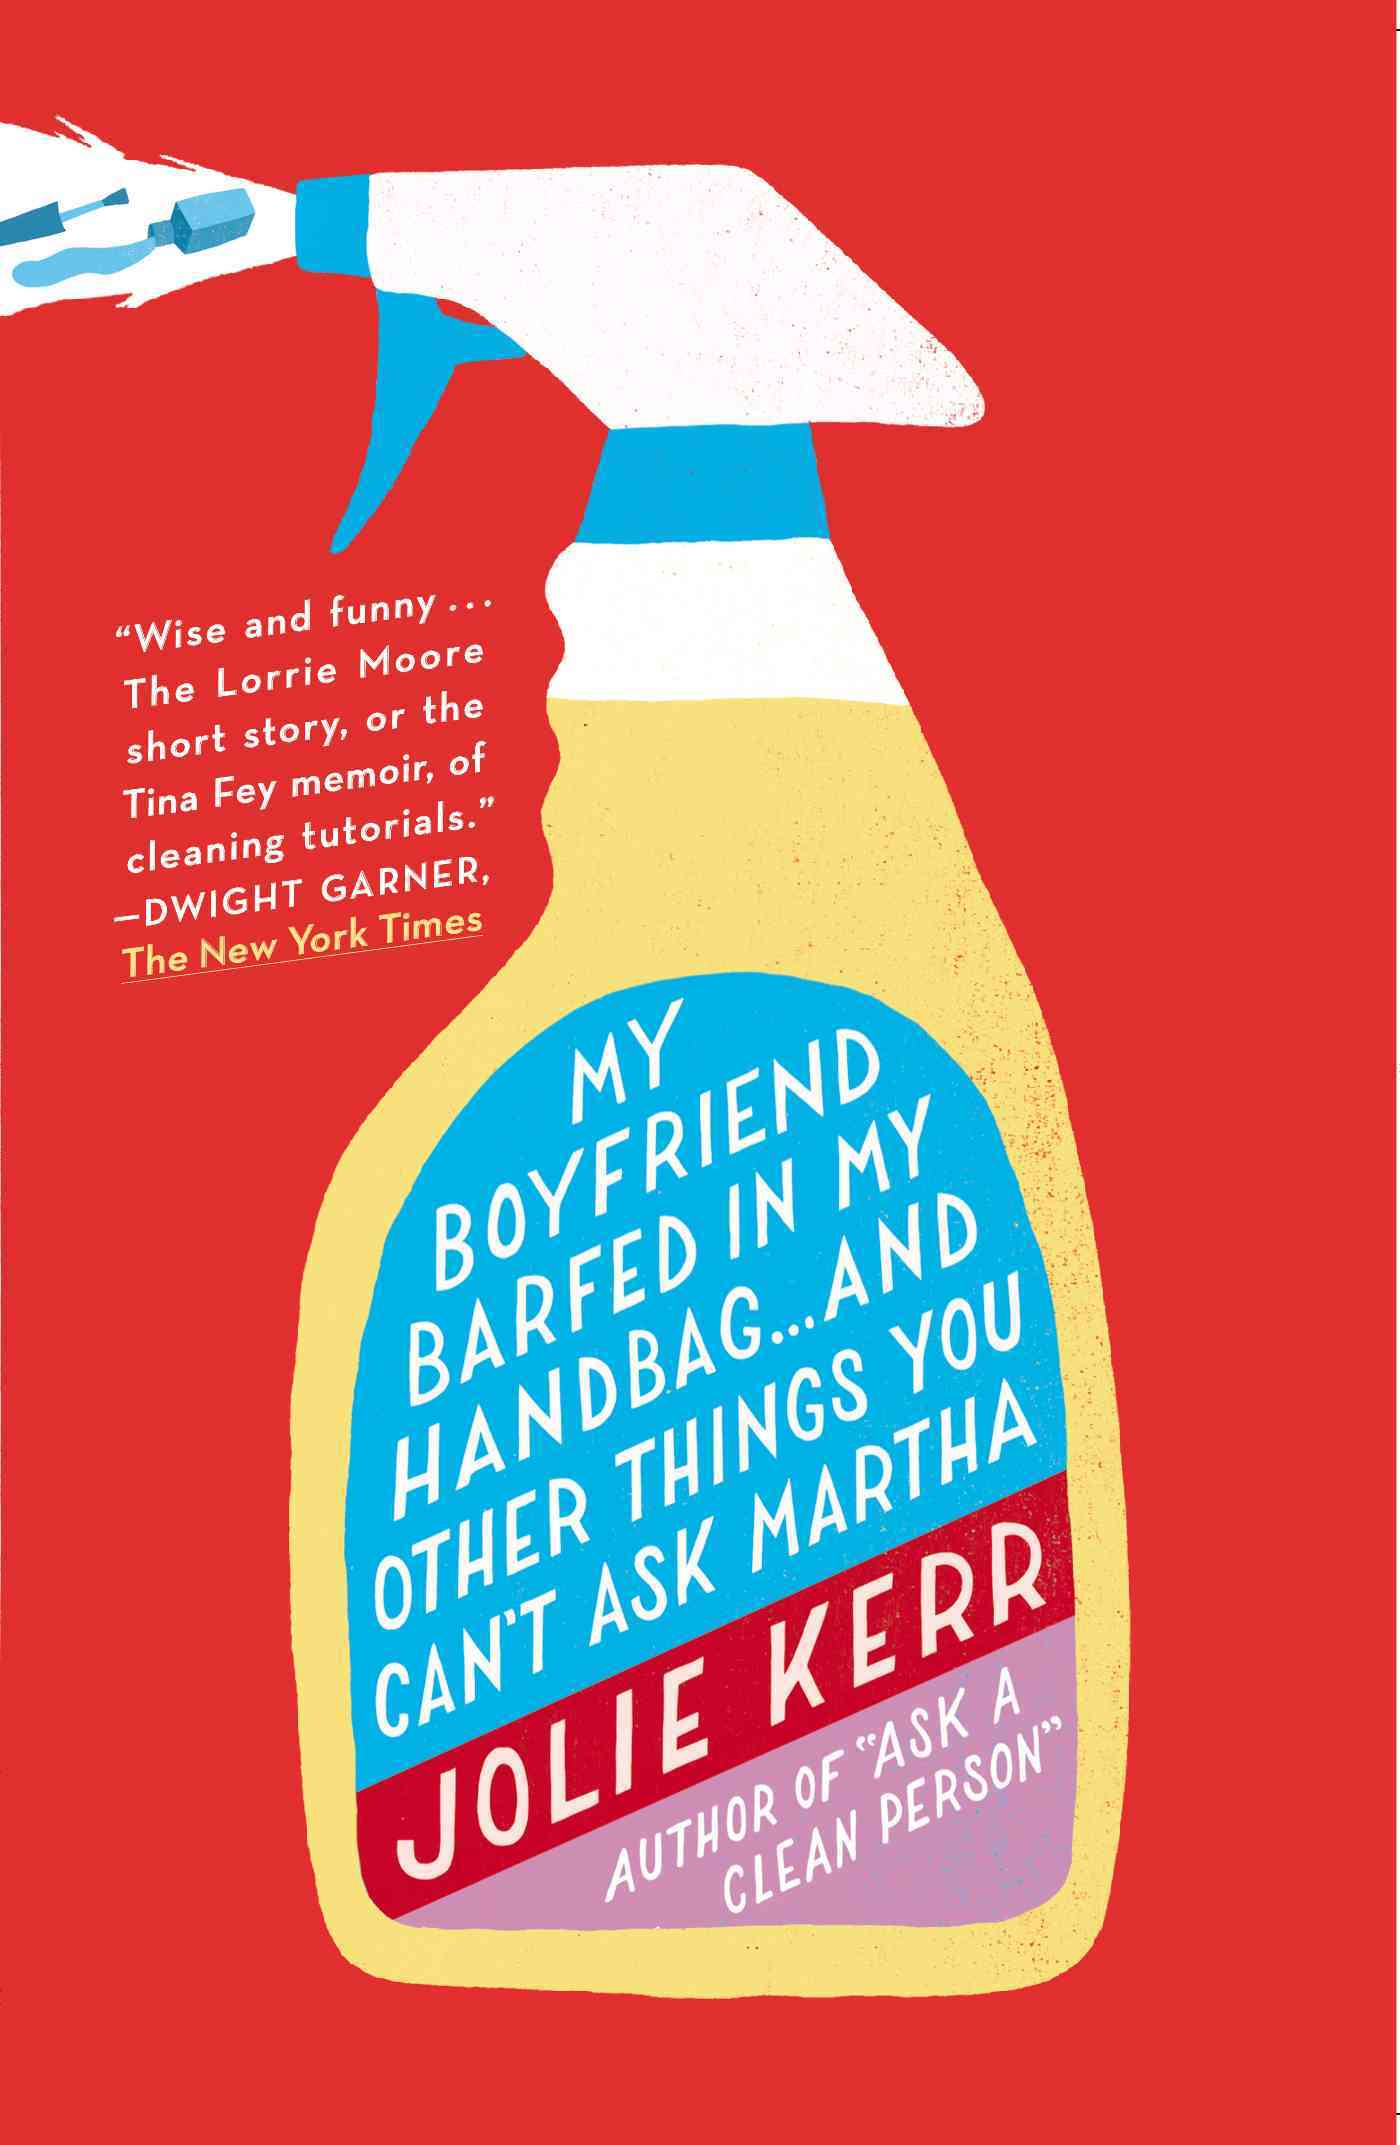 My Boyfriend Barfed in My Handbag . . . and Other Things You Can't Ask Martha By Kerr, Jolie